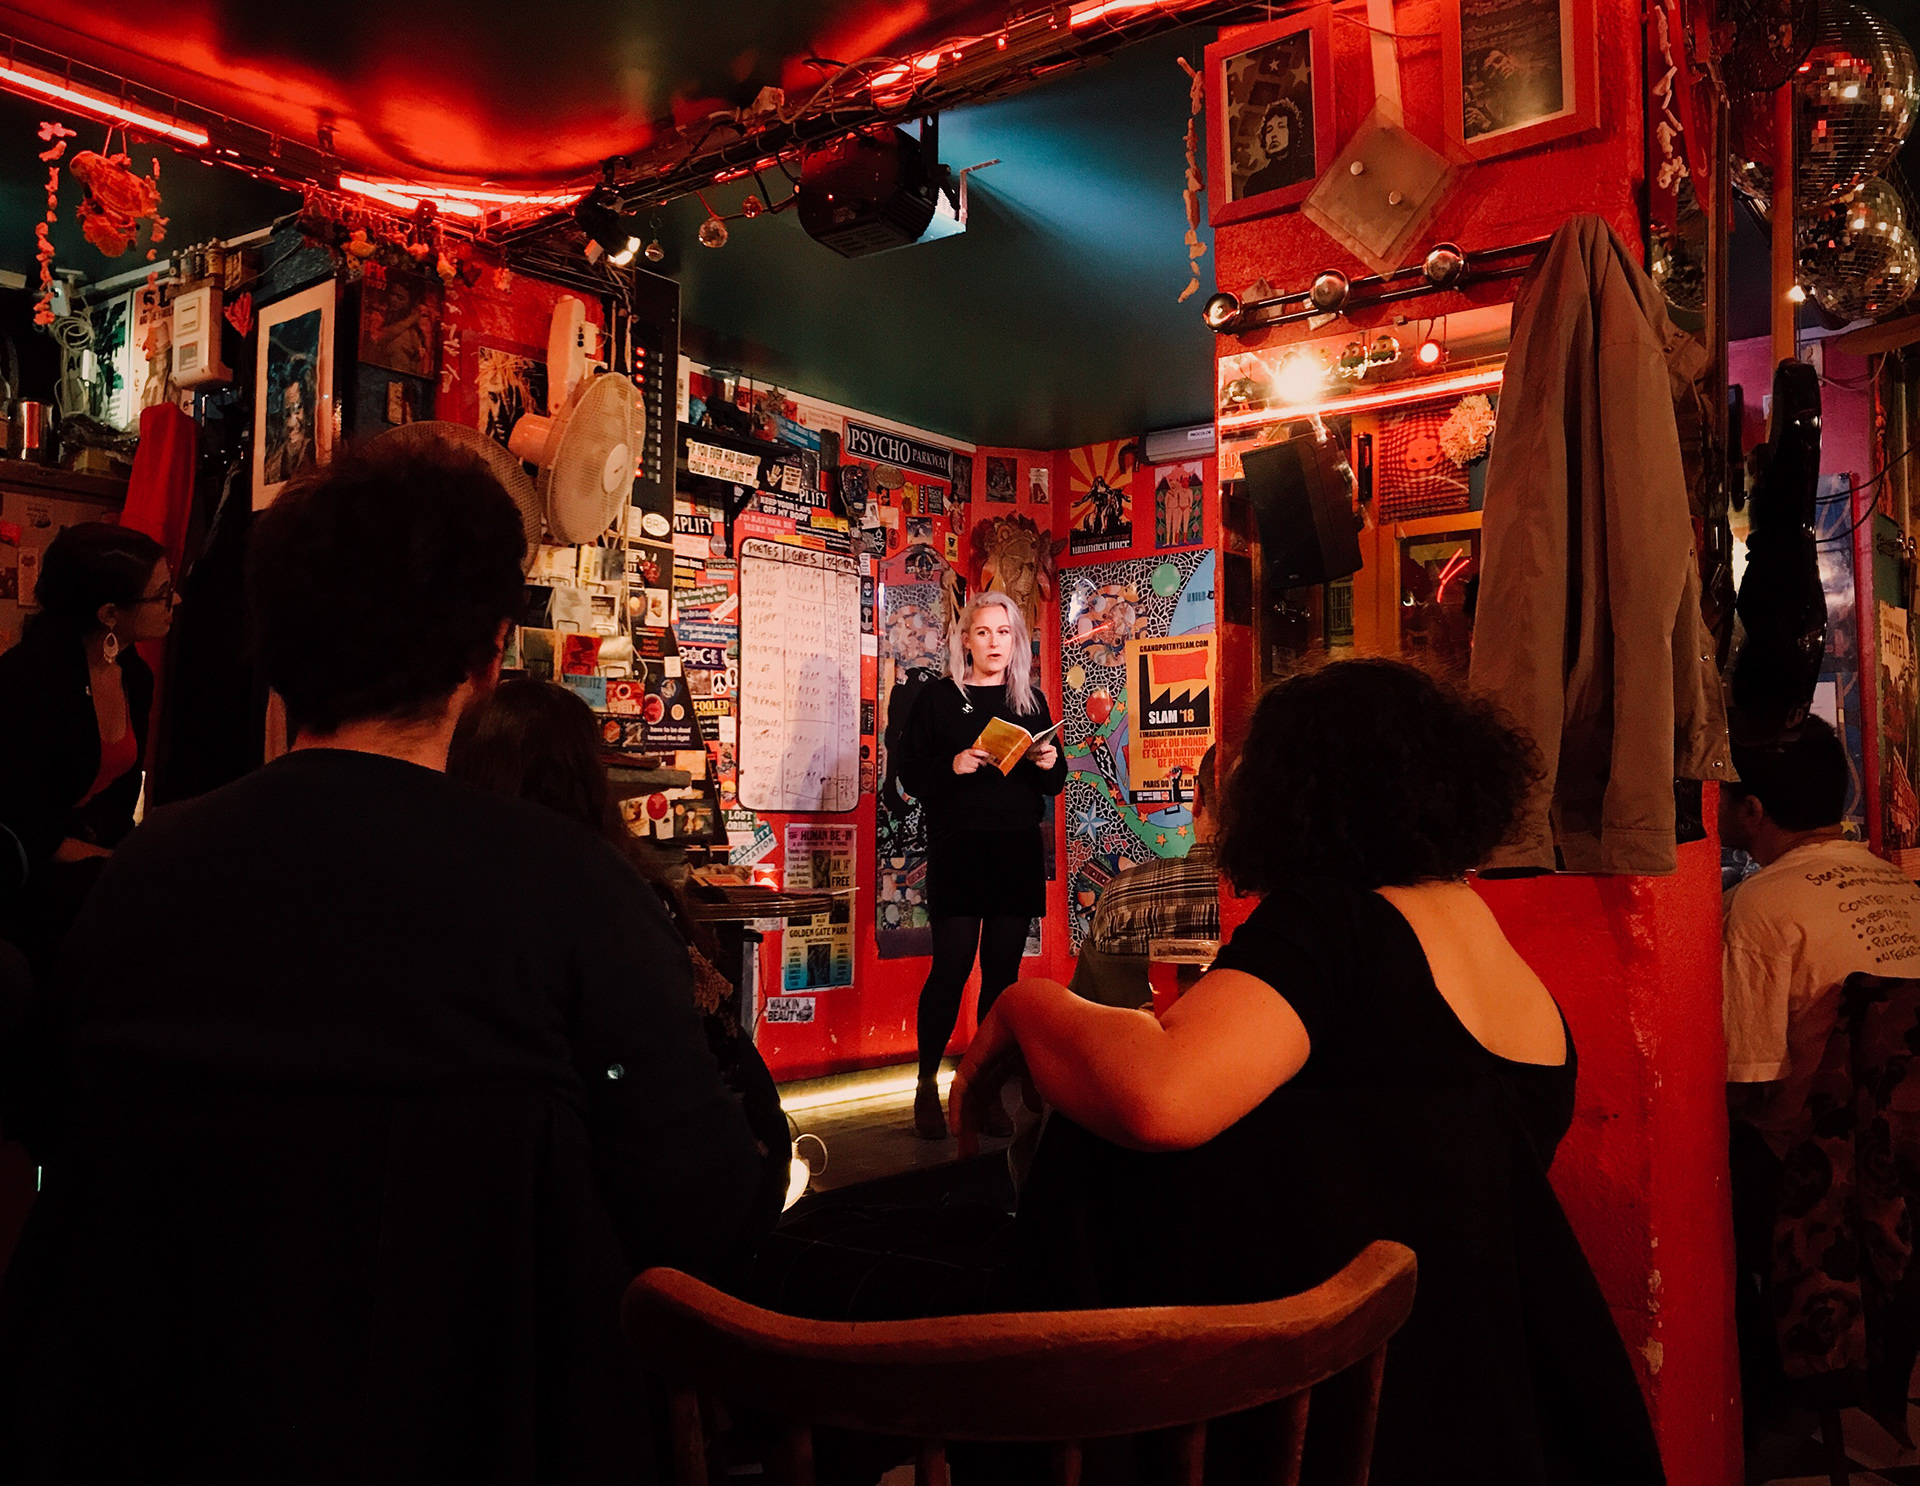 Irish poet Ingrid Casey gives a reading at Cabaret Populaire.